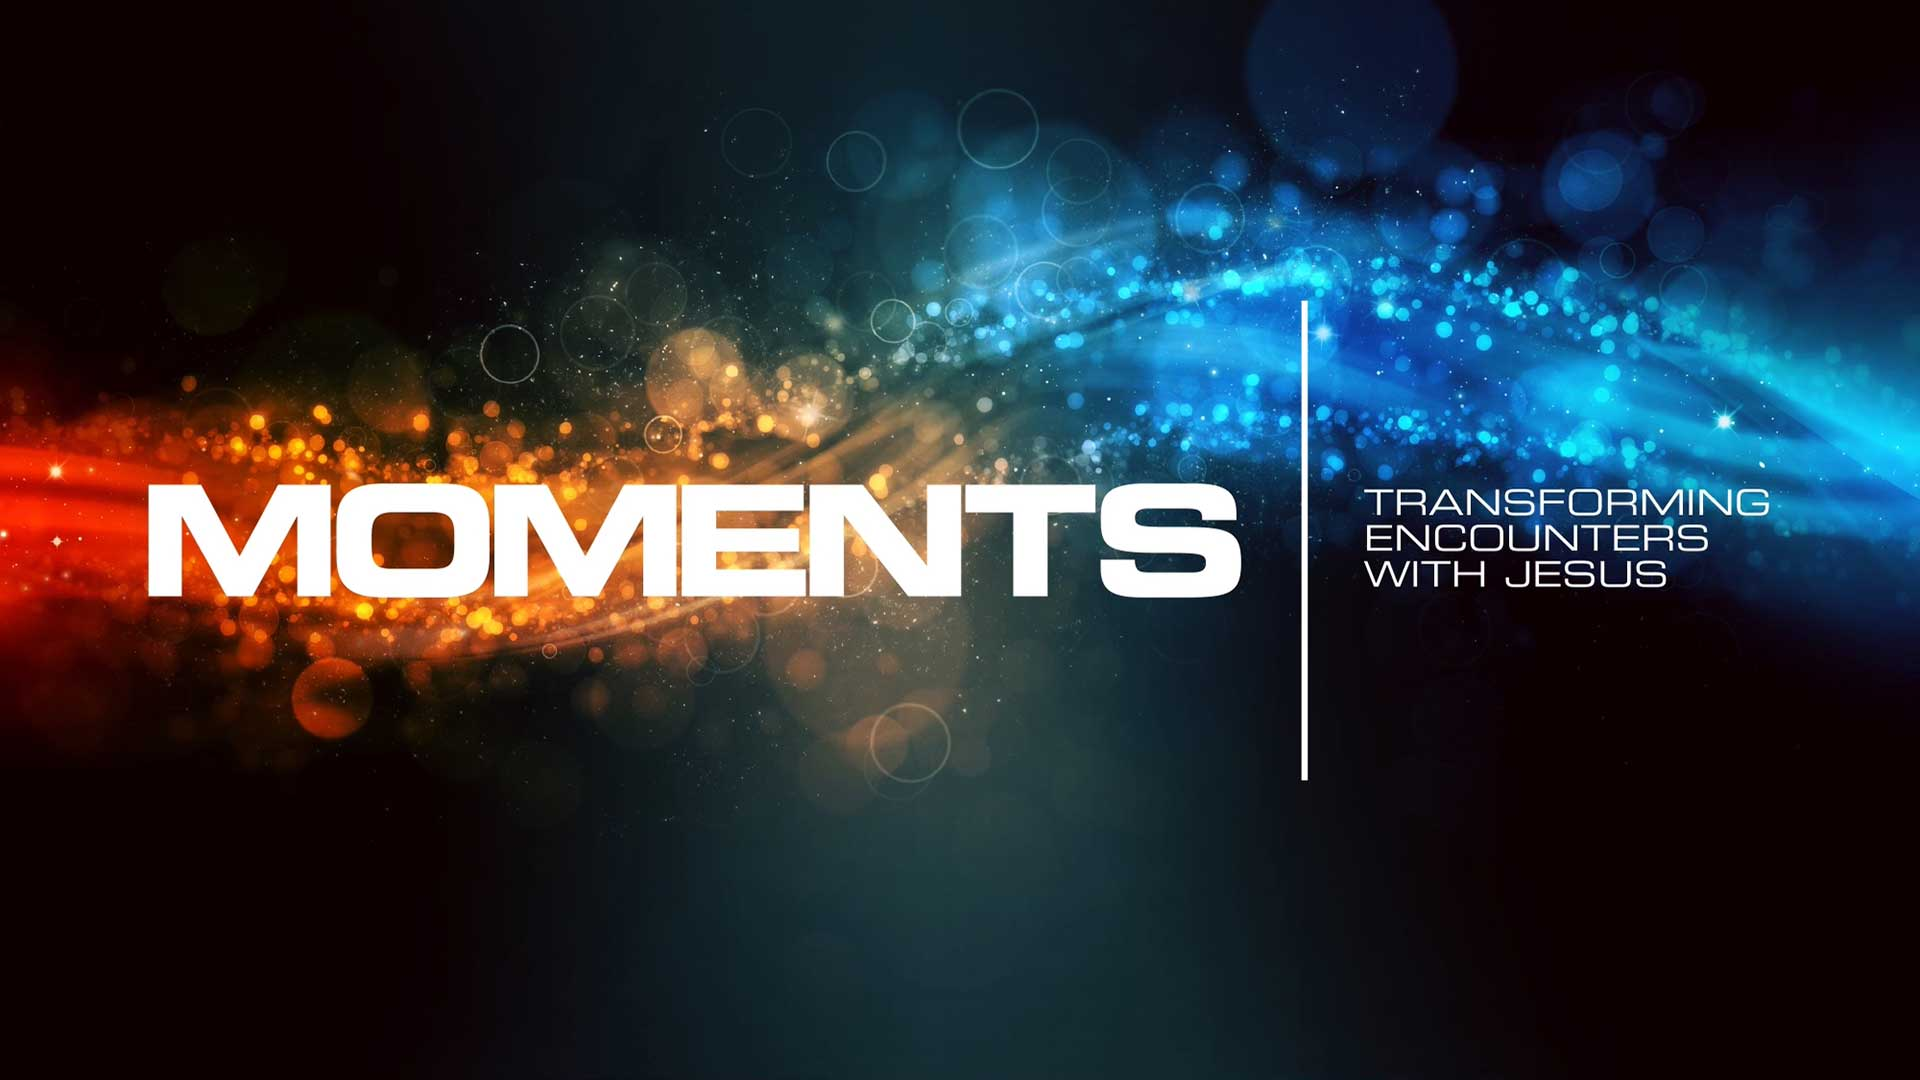 MOMENTS: Transforming encounters with Jesus